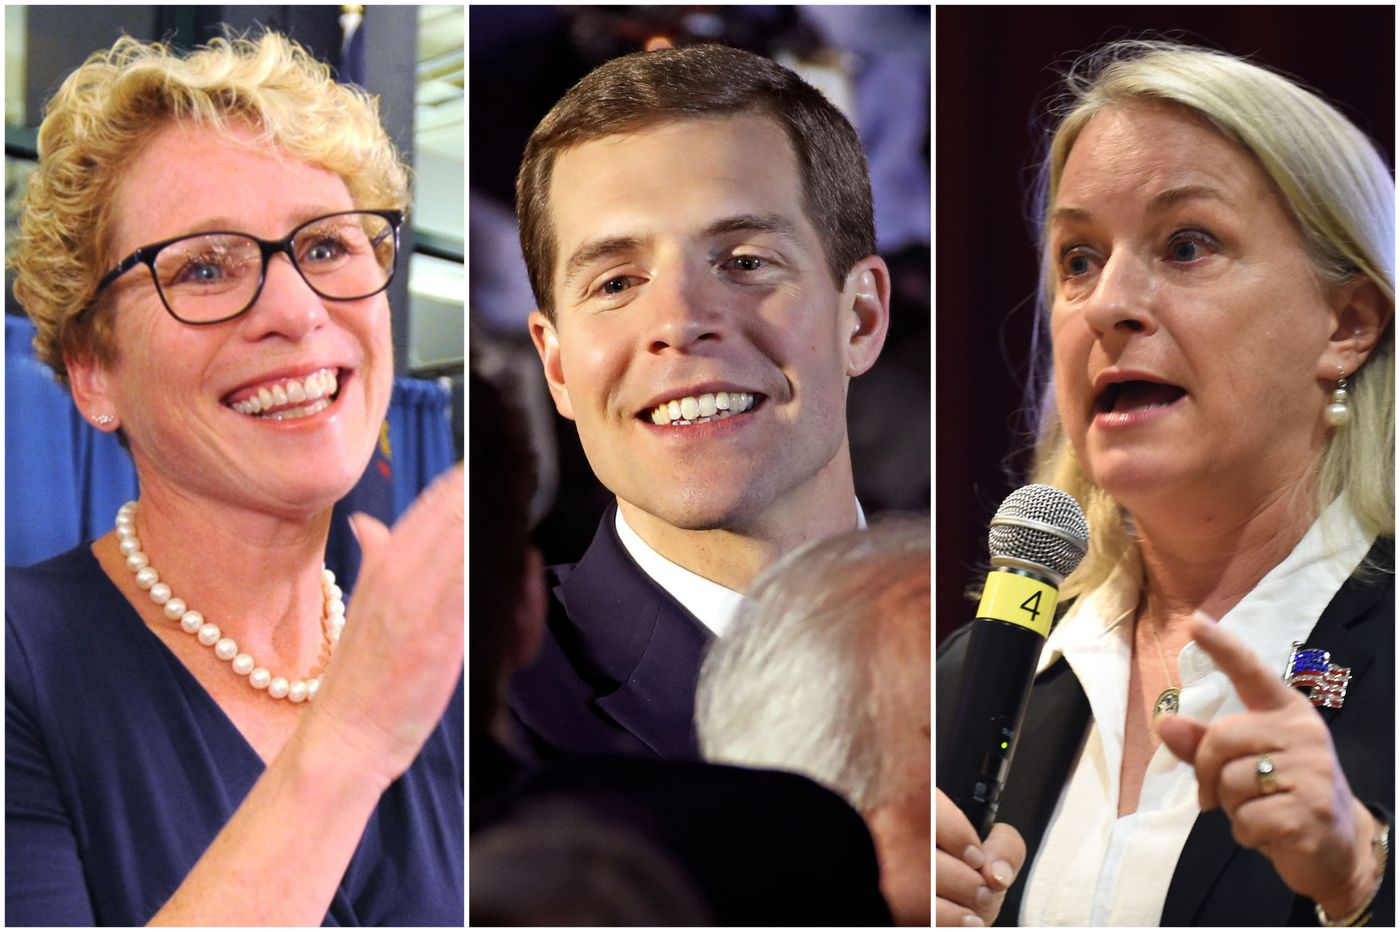 Pennsylvania Democrats who won Republican districts on how to beat Trump in 2020